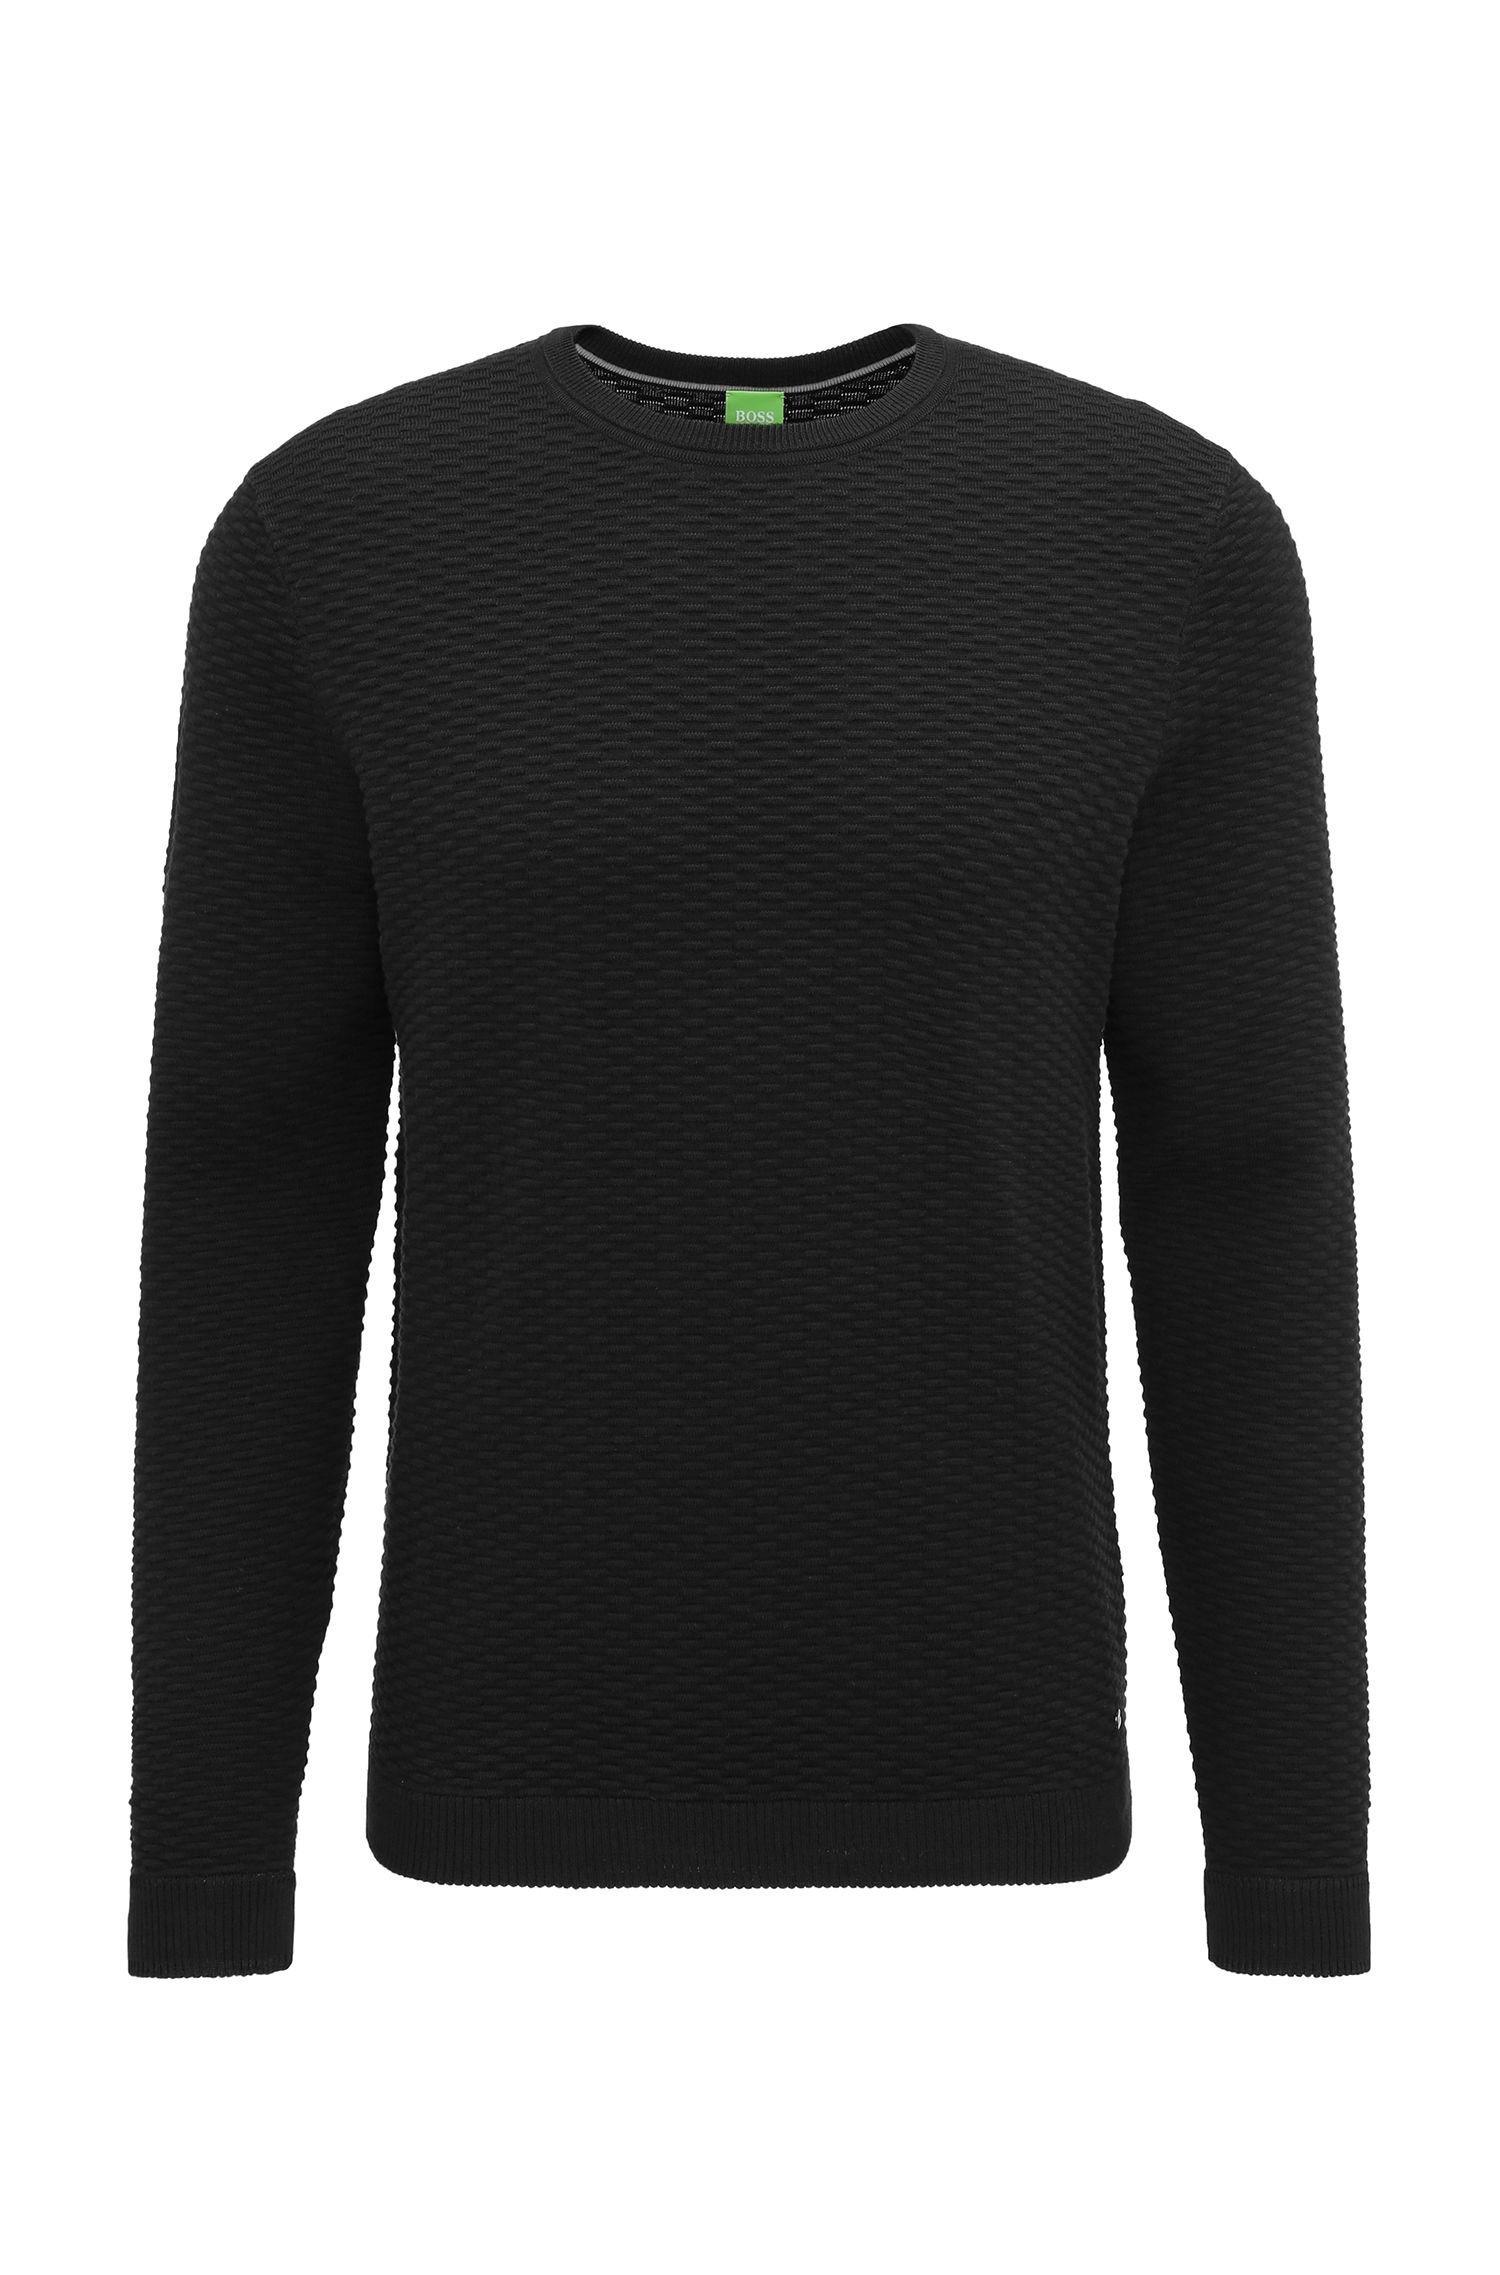 Regular-Fit Pullover aus strukturiertem Baumwoll-Mix